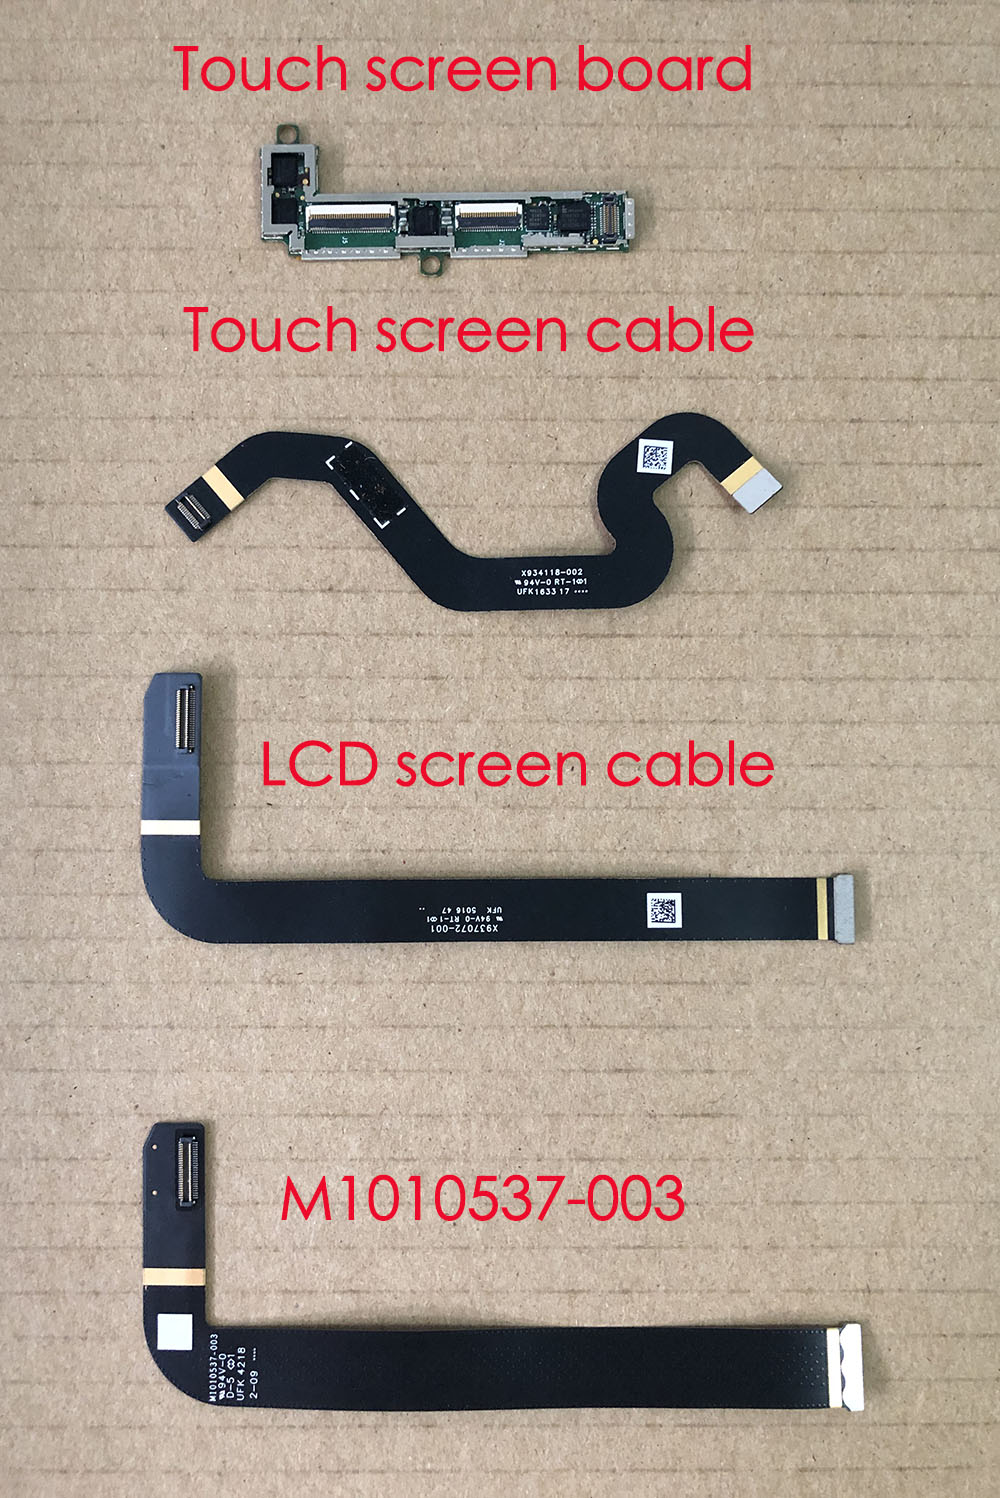 LVDS Cable For Microsoft Surface Pro4 1724 Touch LCD Flex Cable Connectors Small Board X934118-002  X937072-001 M1010537-003